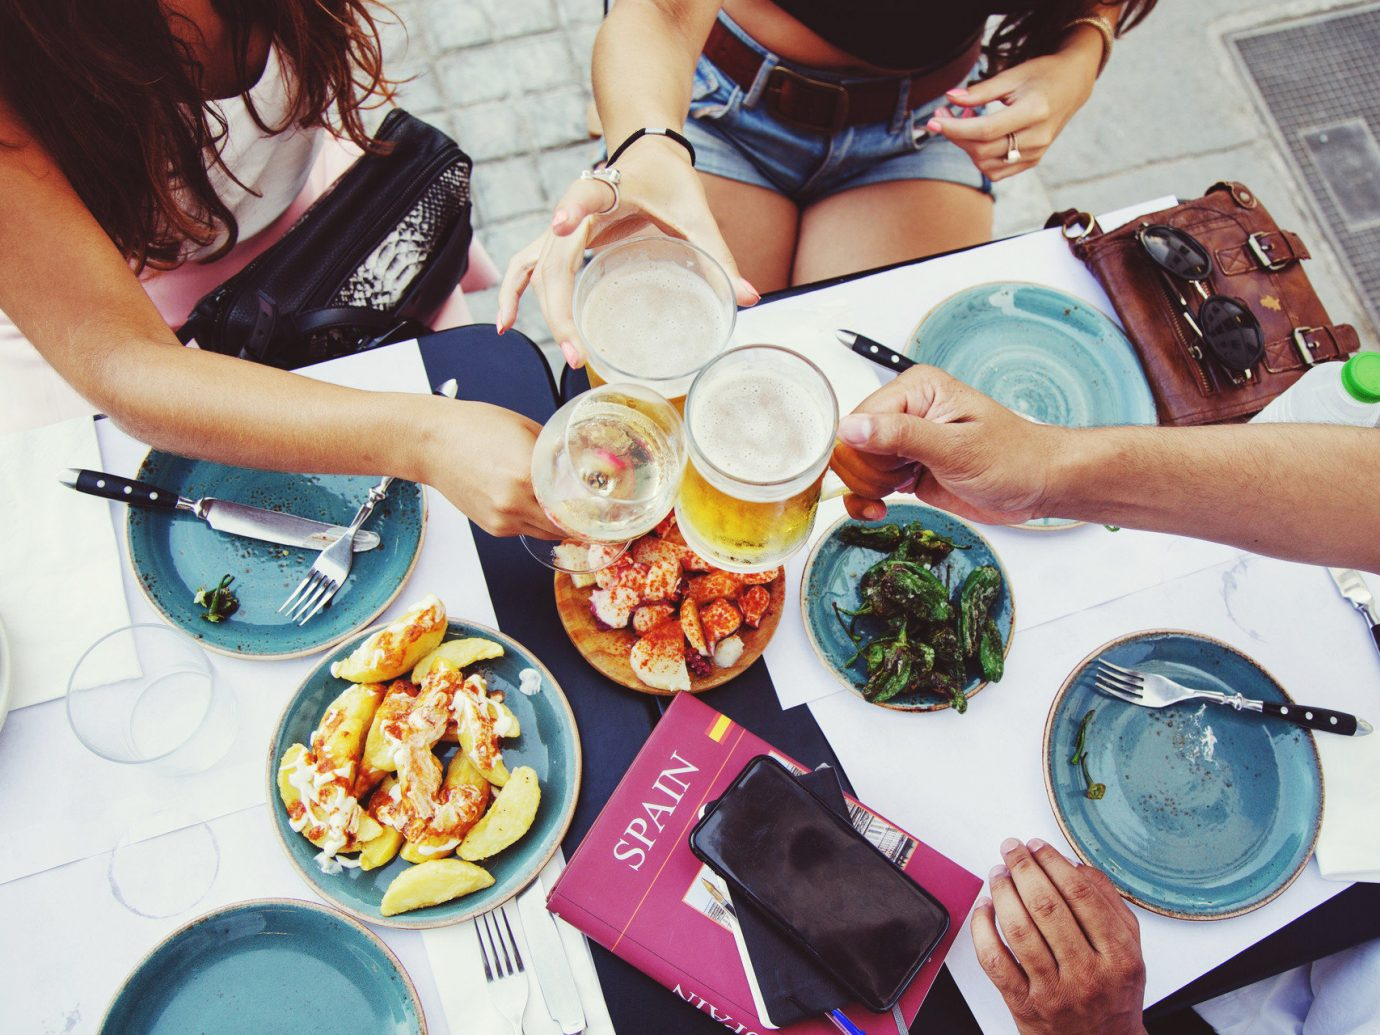 Trip Ideas person food woman plate meal lunch day people cooking sense Party eating